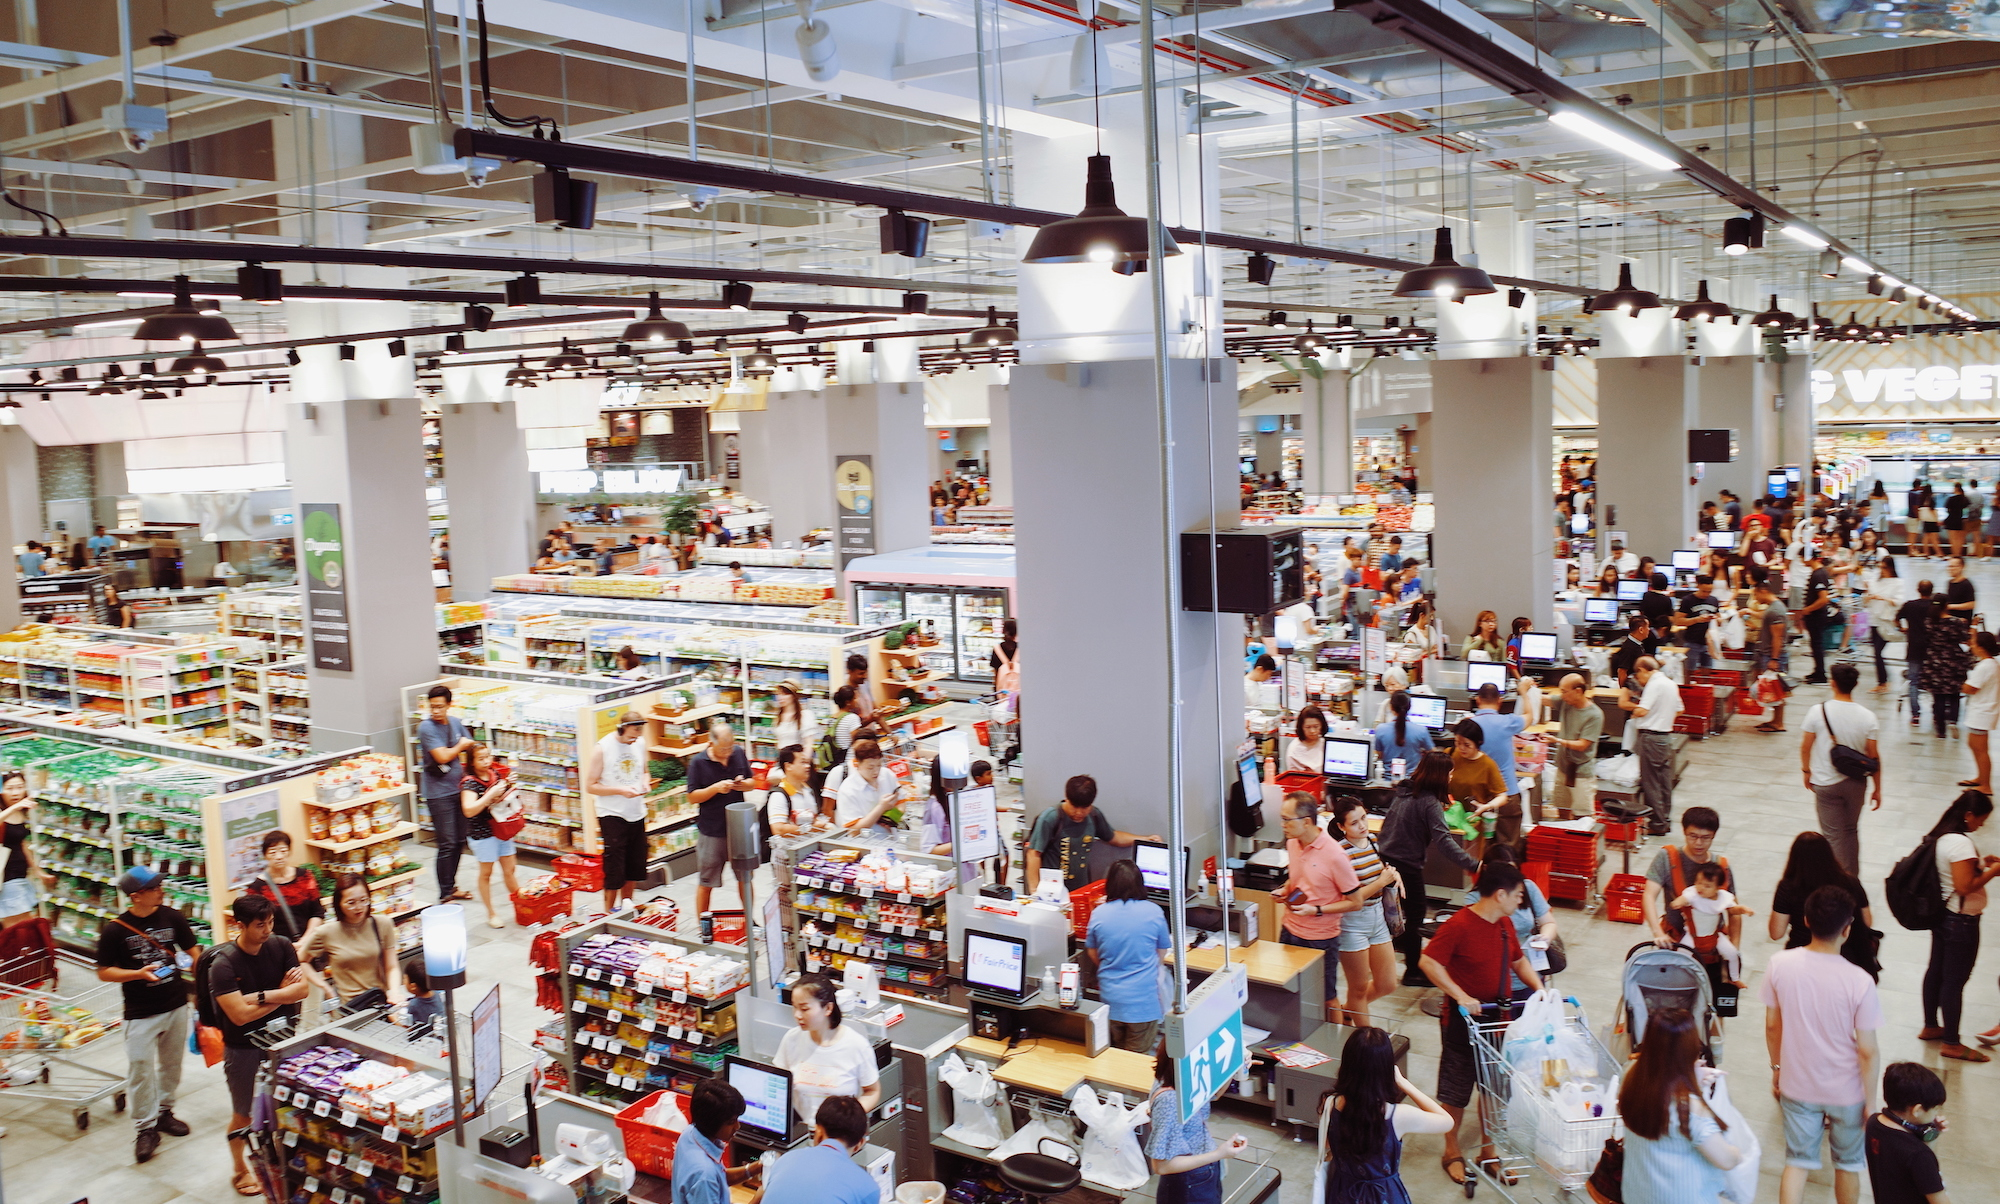 Guide to shopping at FairPrice Xtra supermarket in VivoCity